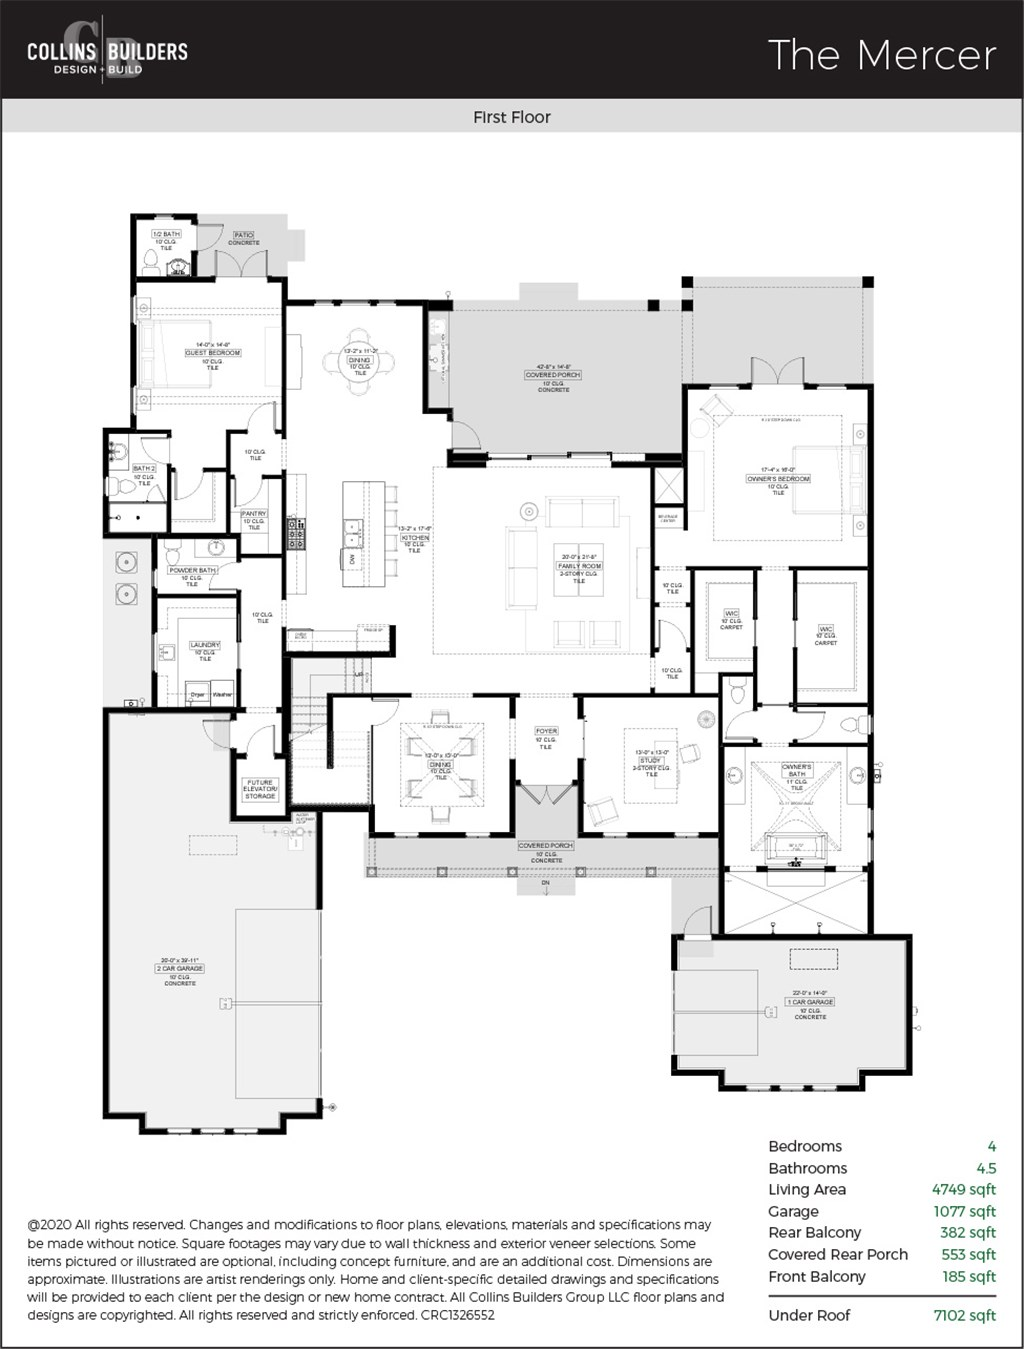 Floor Plan The Mercer First Floor